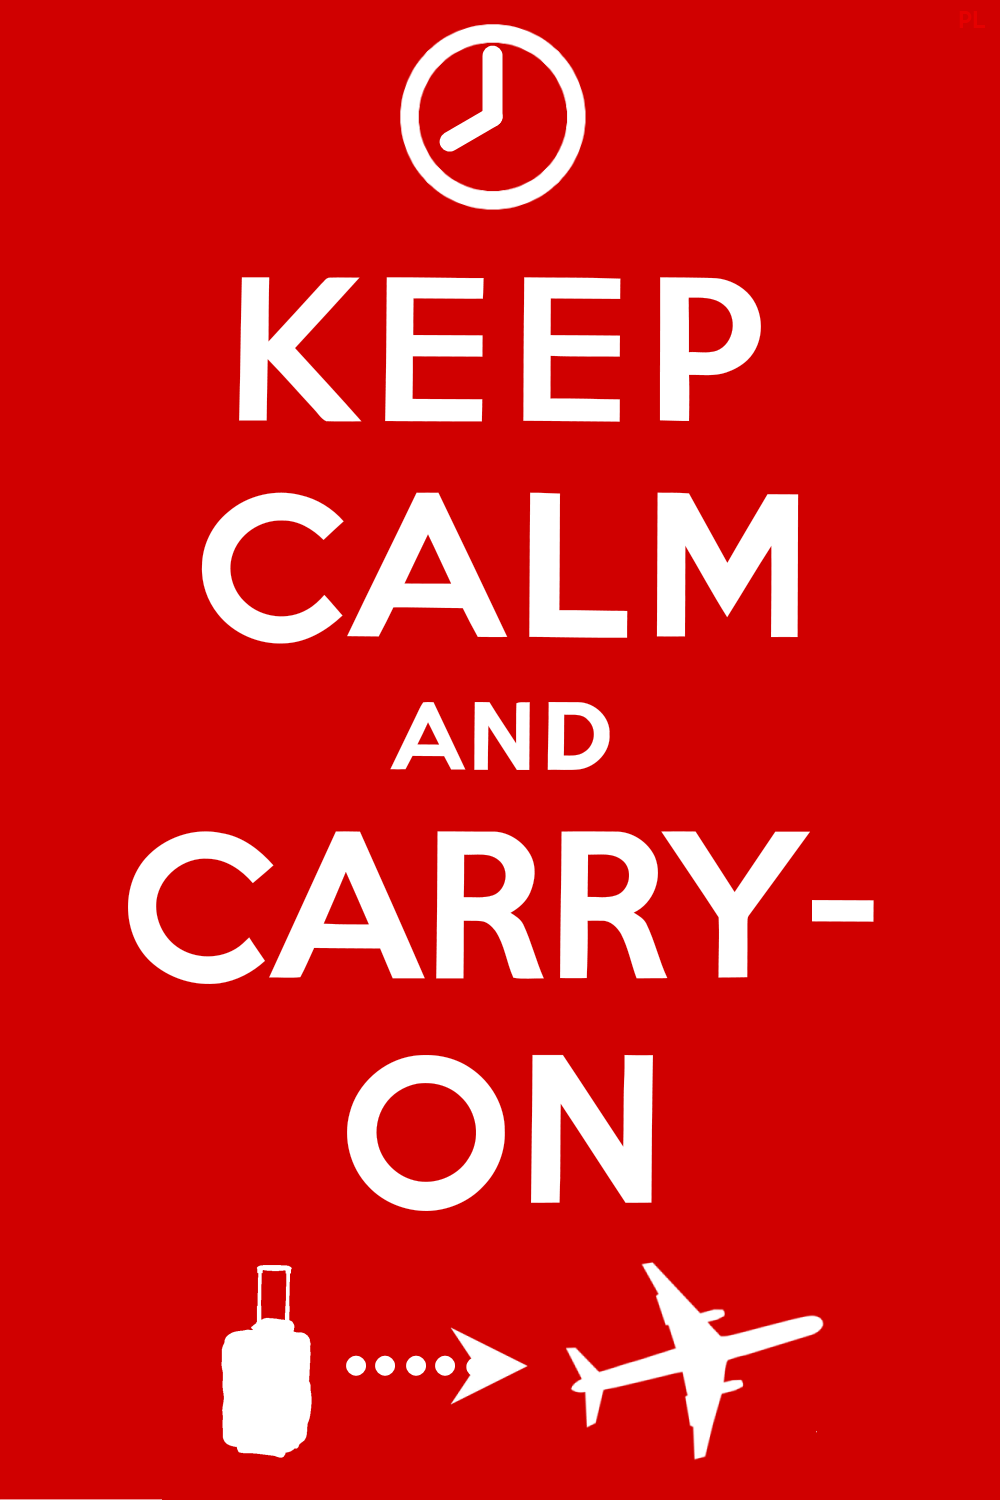 keep calm and carry on baggage keep calm and carry on know your meme. Black Bedroom Furniture Sets. Home Design Ideas